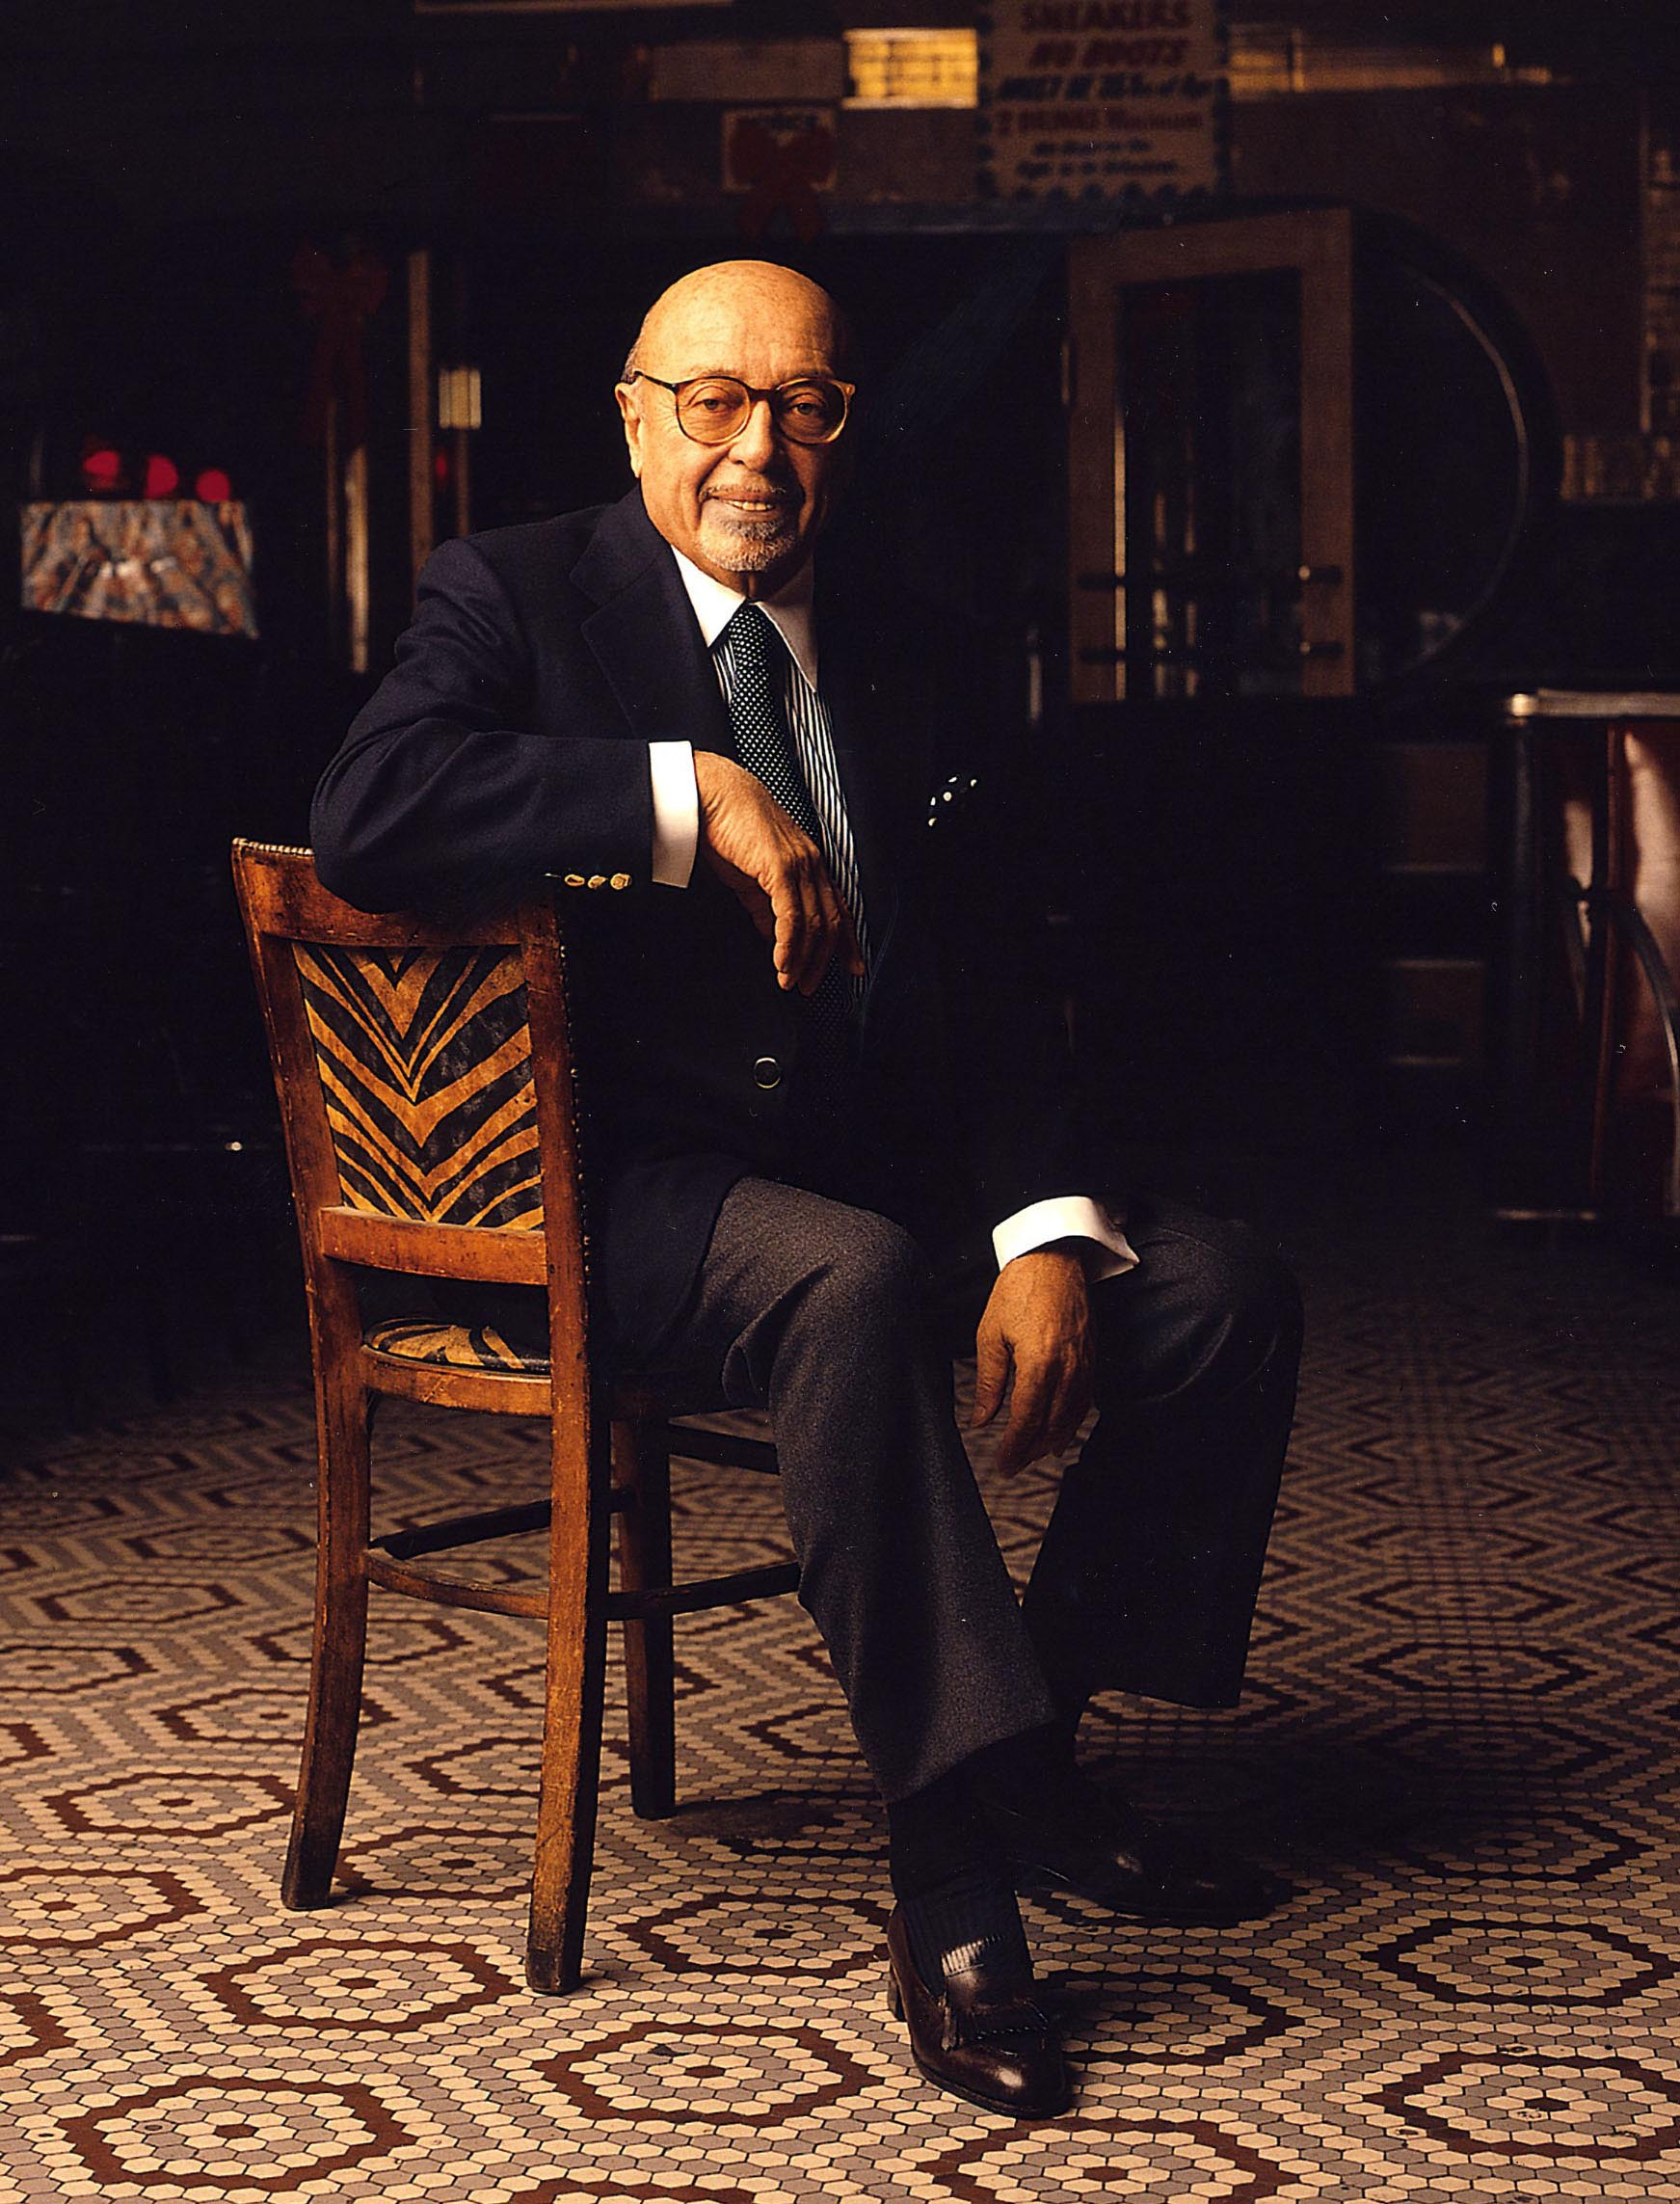 Ahmet Ertegun at the Lenox Lounge in Harlem, 1997. (Norma Jean Roy, courtesy of Atlantic Records Archive)